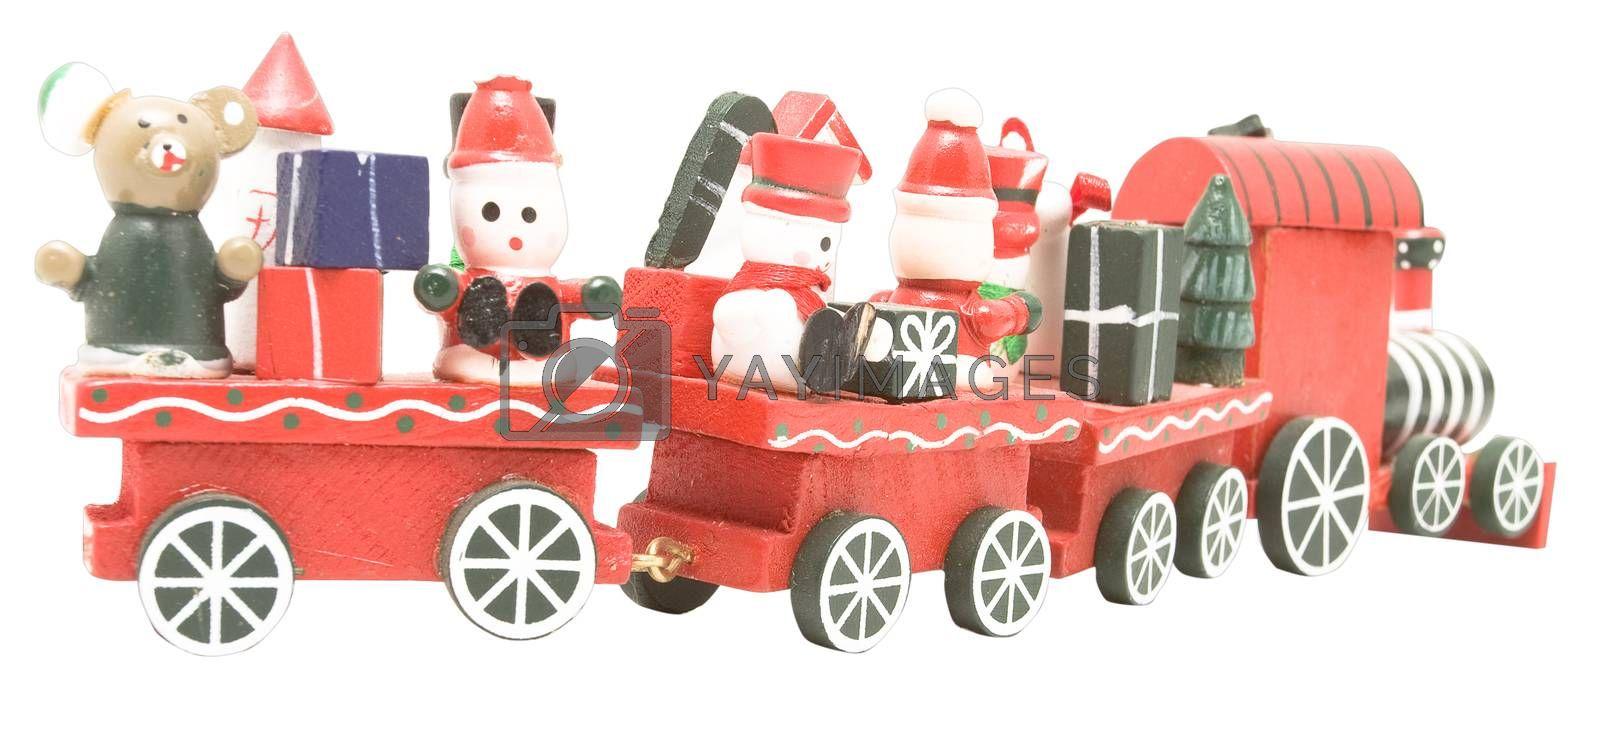 Isolated toy train that can be used for any ages gift concept.